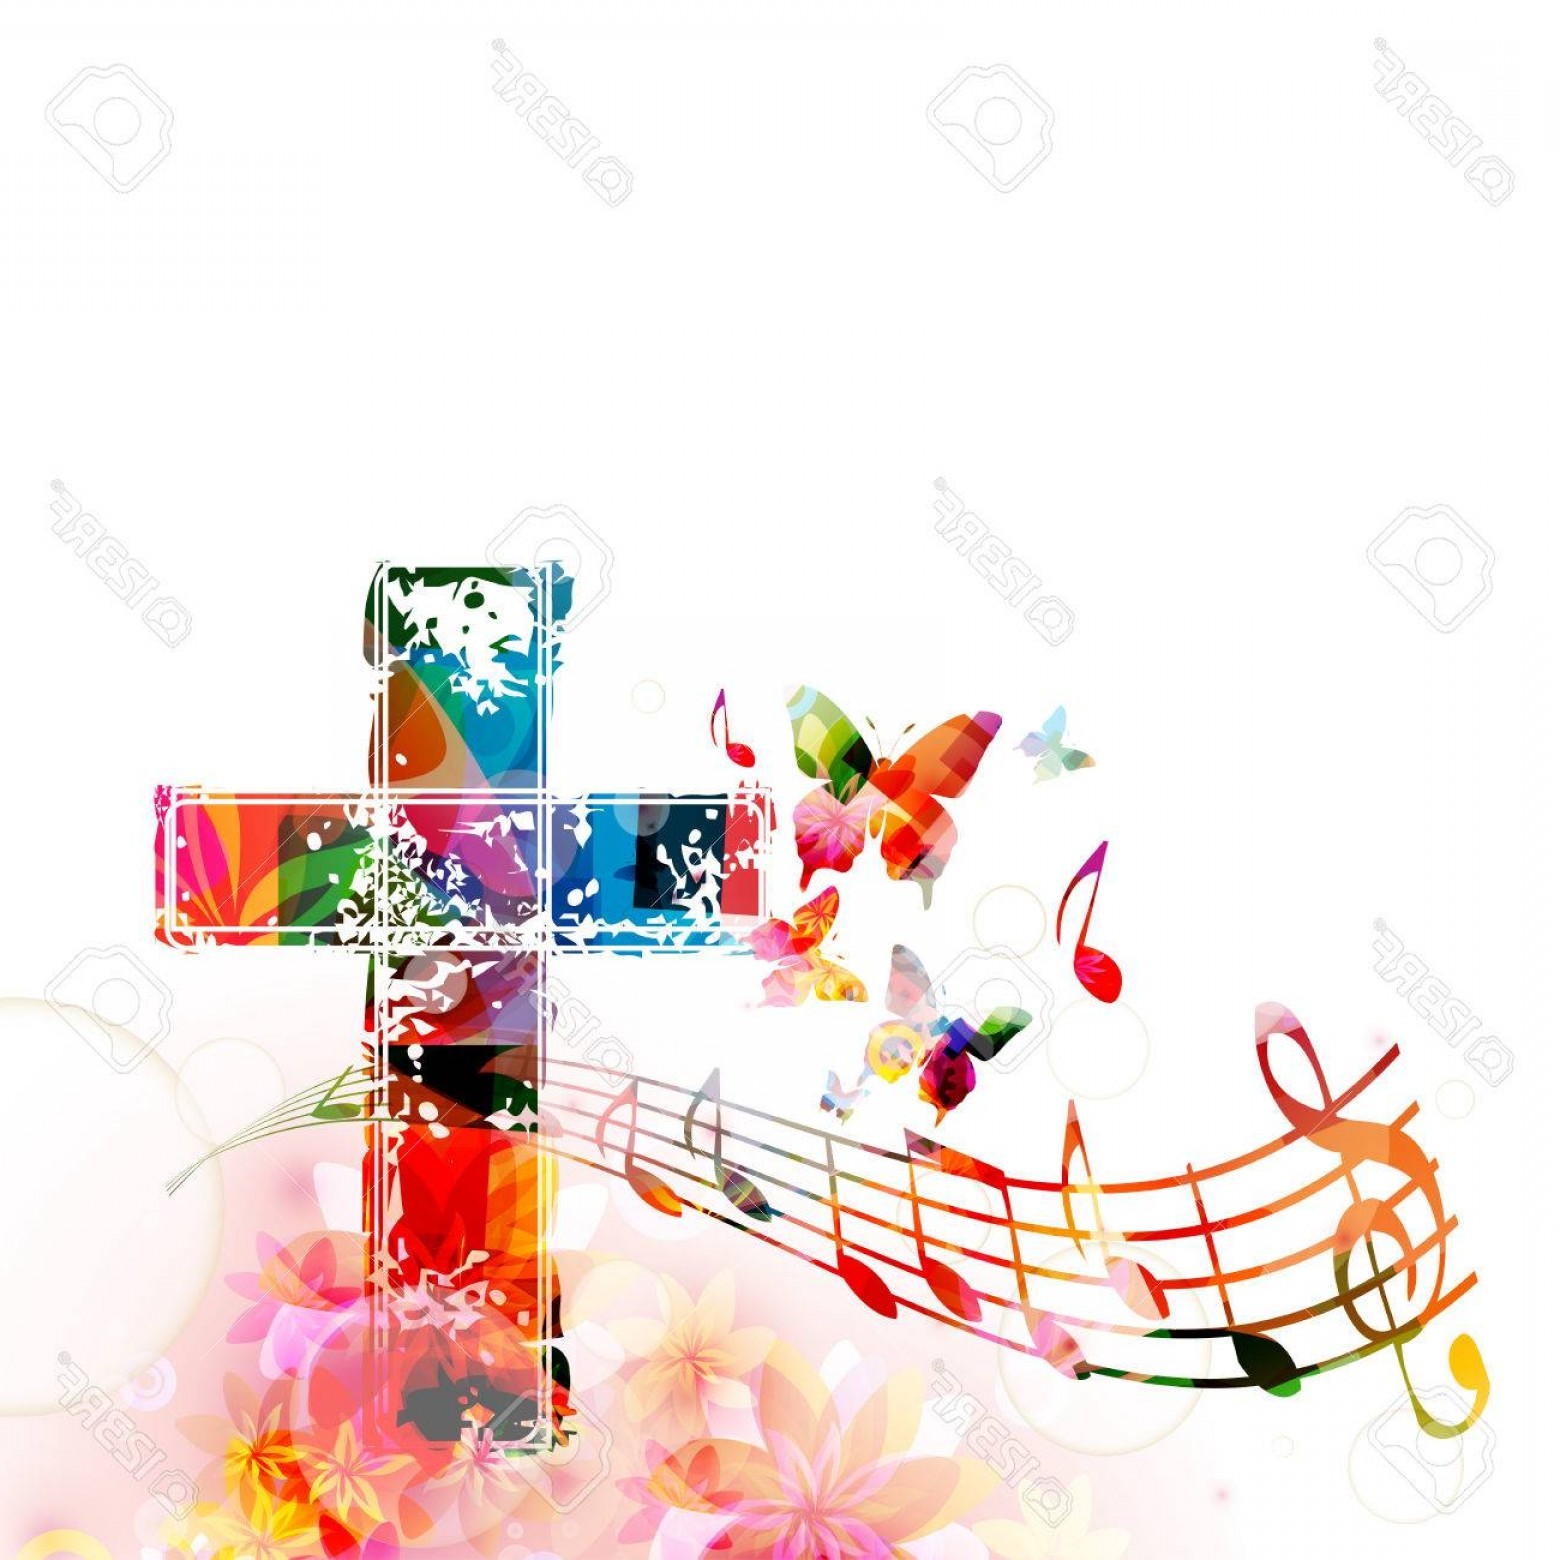 Gospel Music Background Vector: Photostock Vector Colorful Christian Cross With Music Staff And Notes Isolated Vector Illustration Religion Themed Bac